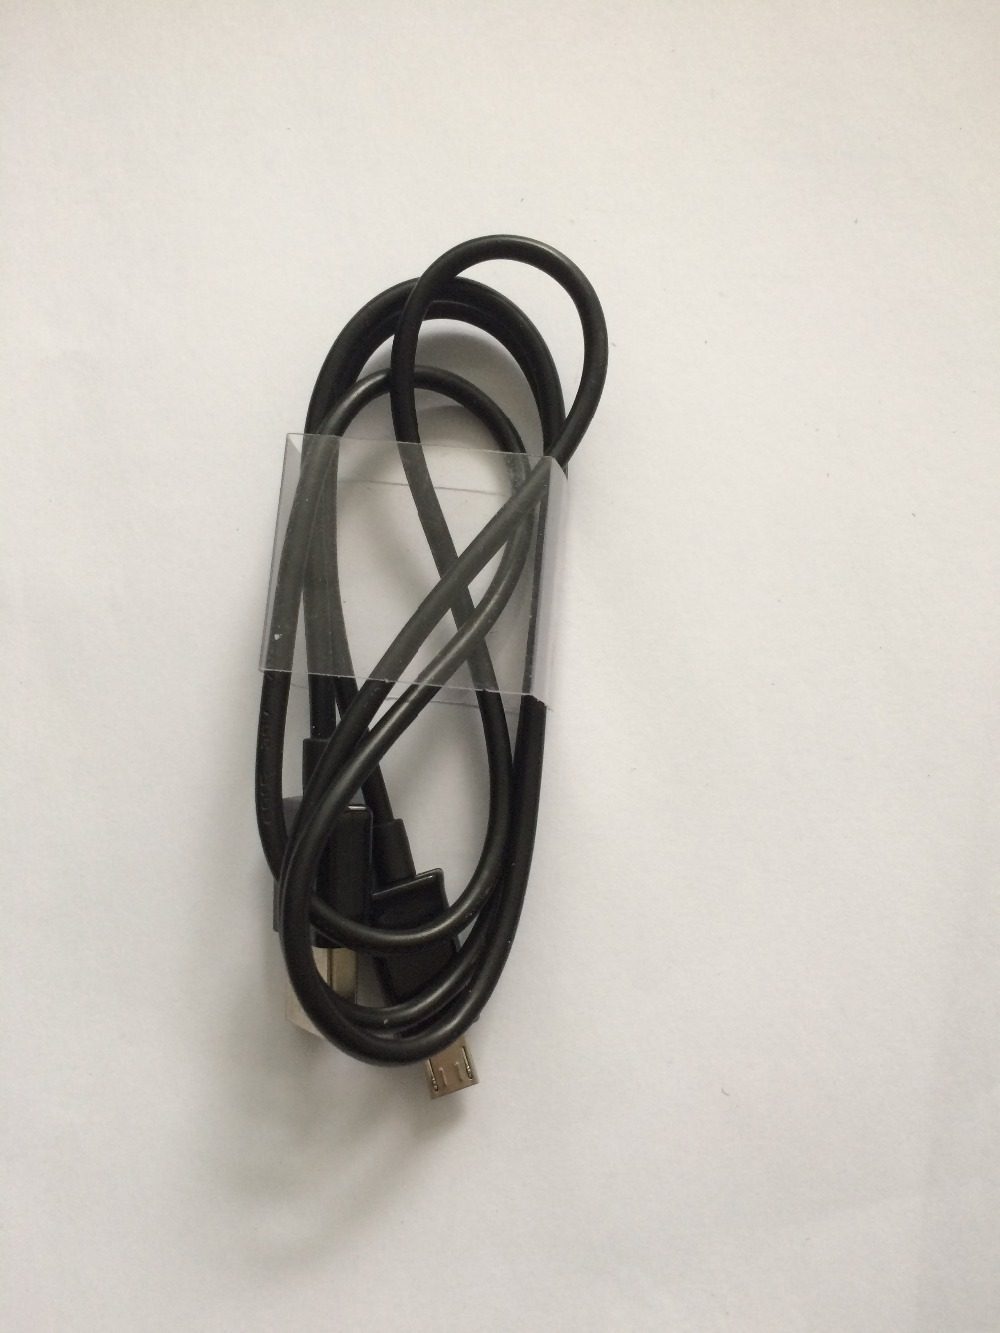 In Shock Used USB Cable For Jiayu G4S 2+16GB Cell Phone + Free Shipping+Tracking Number